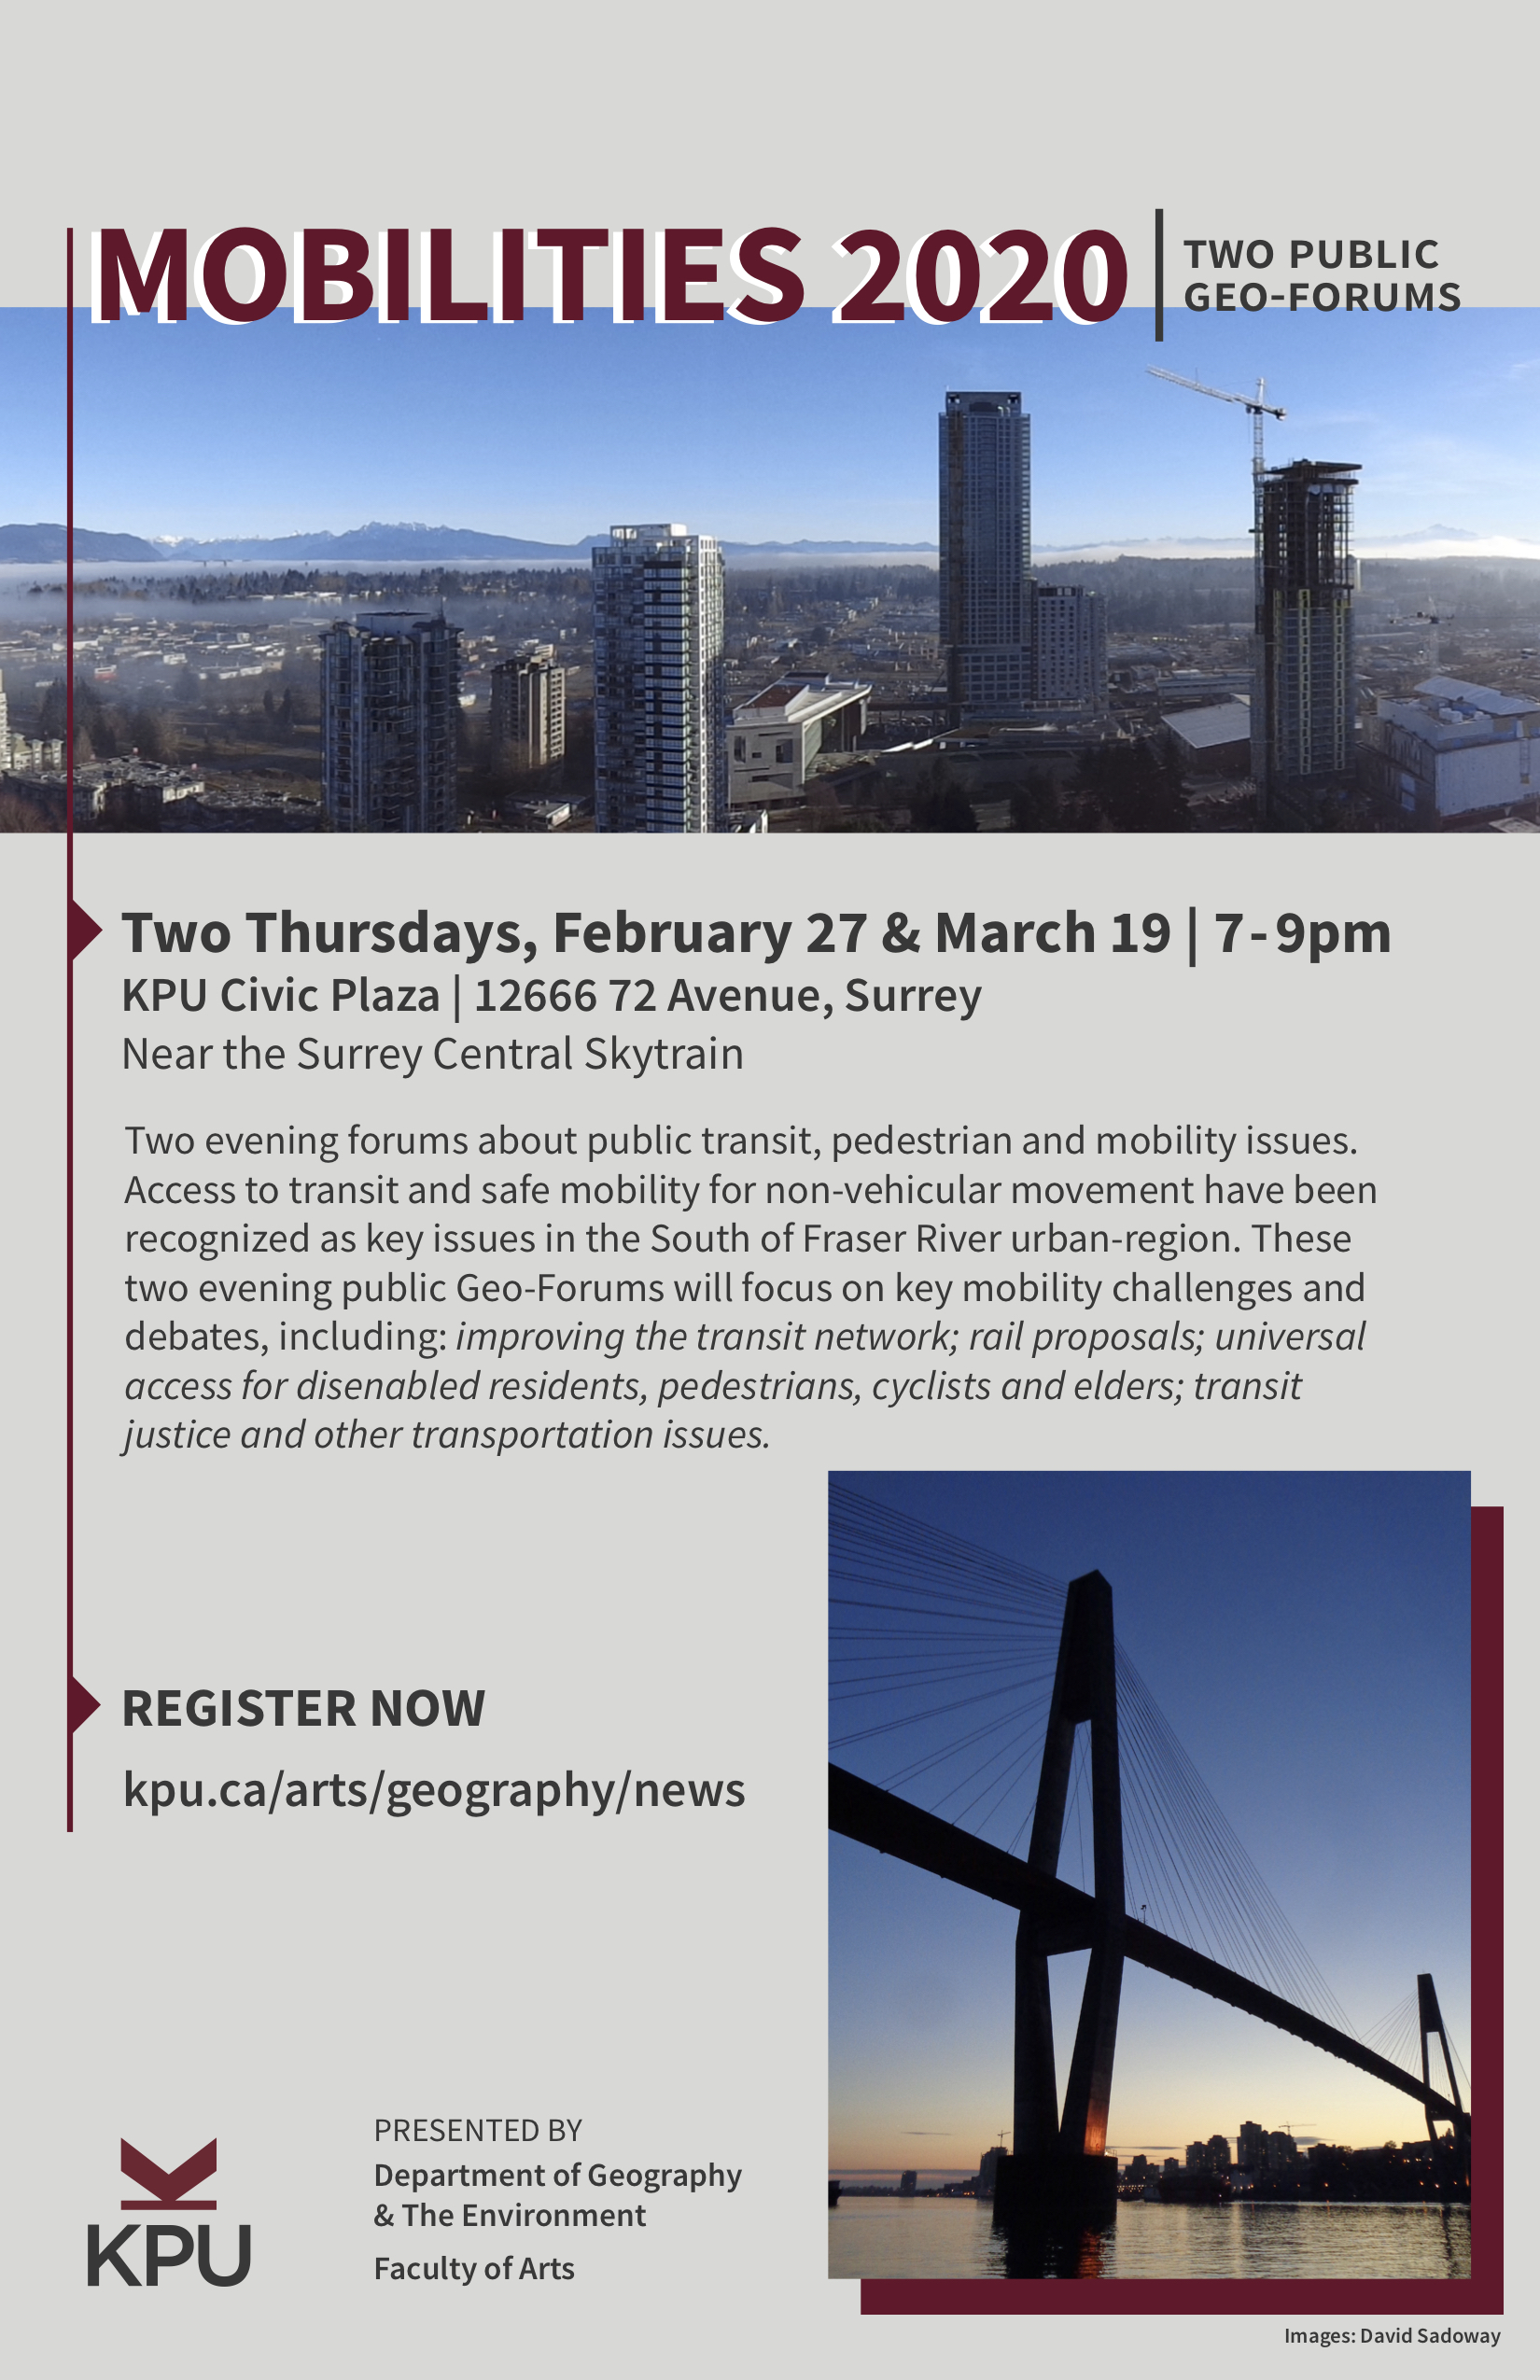 Mobilities2020-KPU-CivicPlaza-Fe27-Mar19